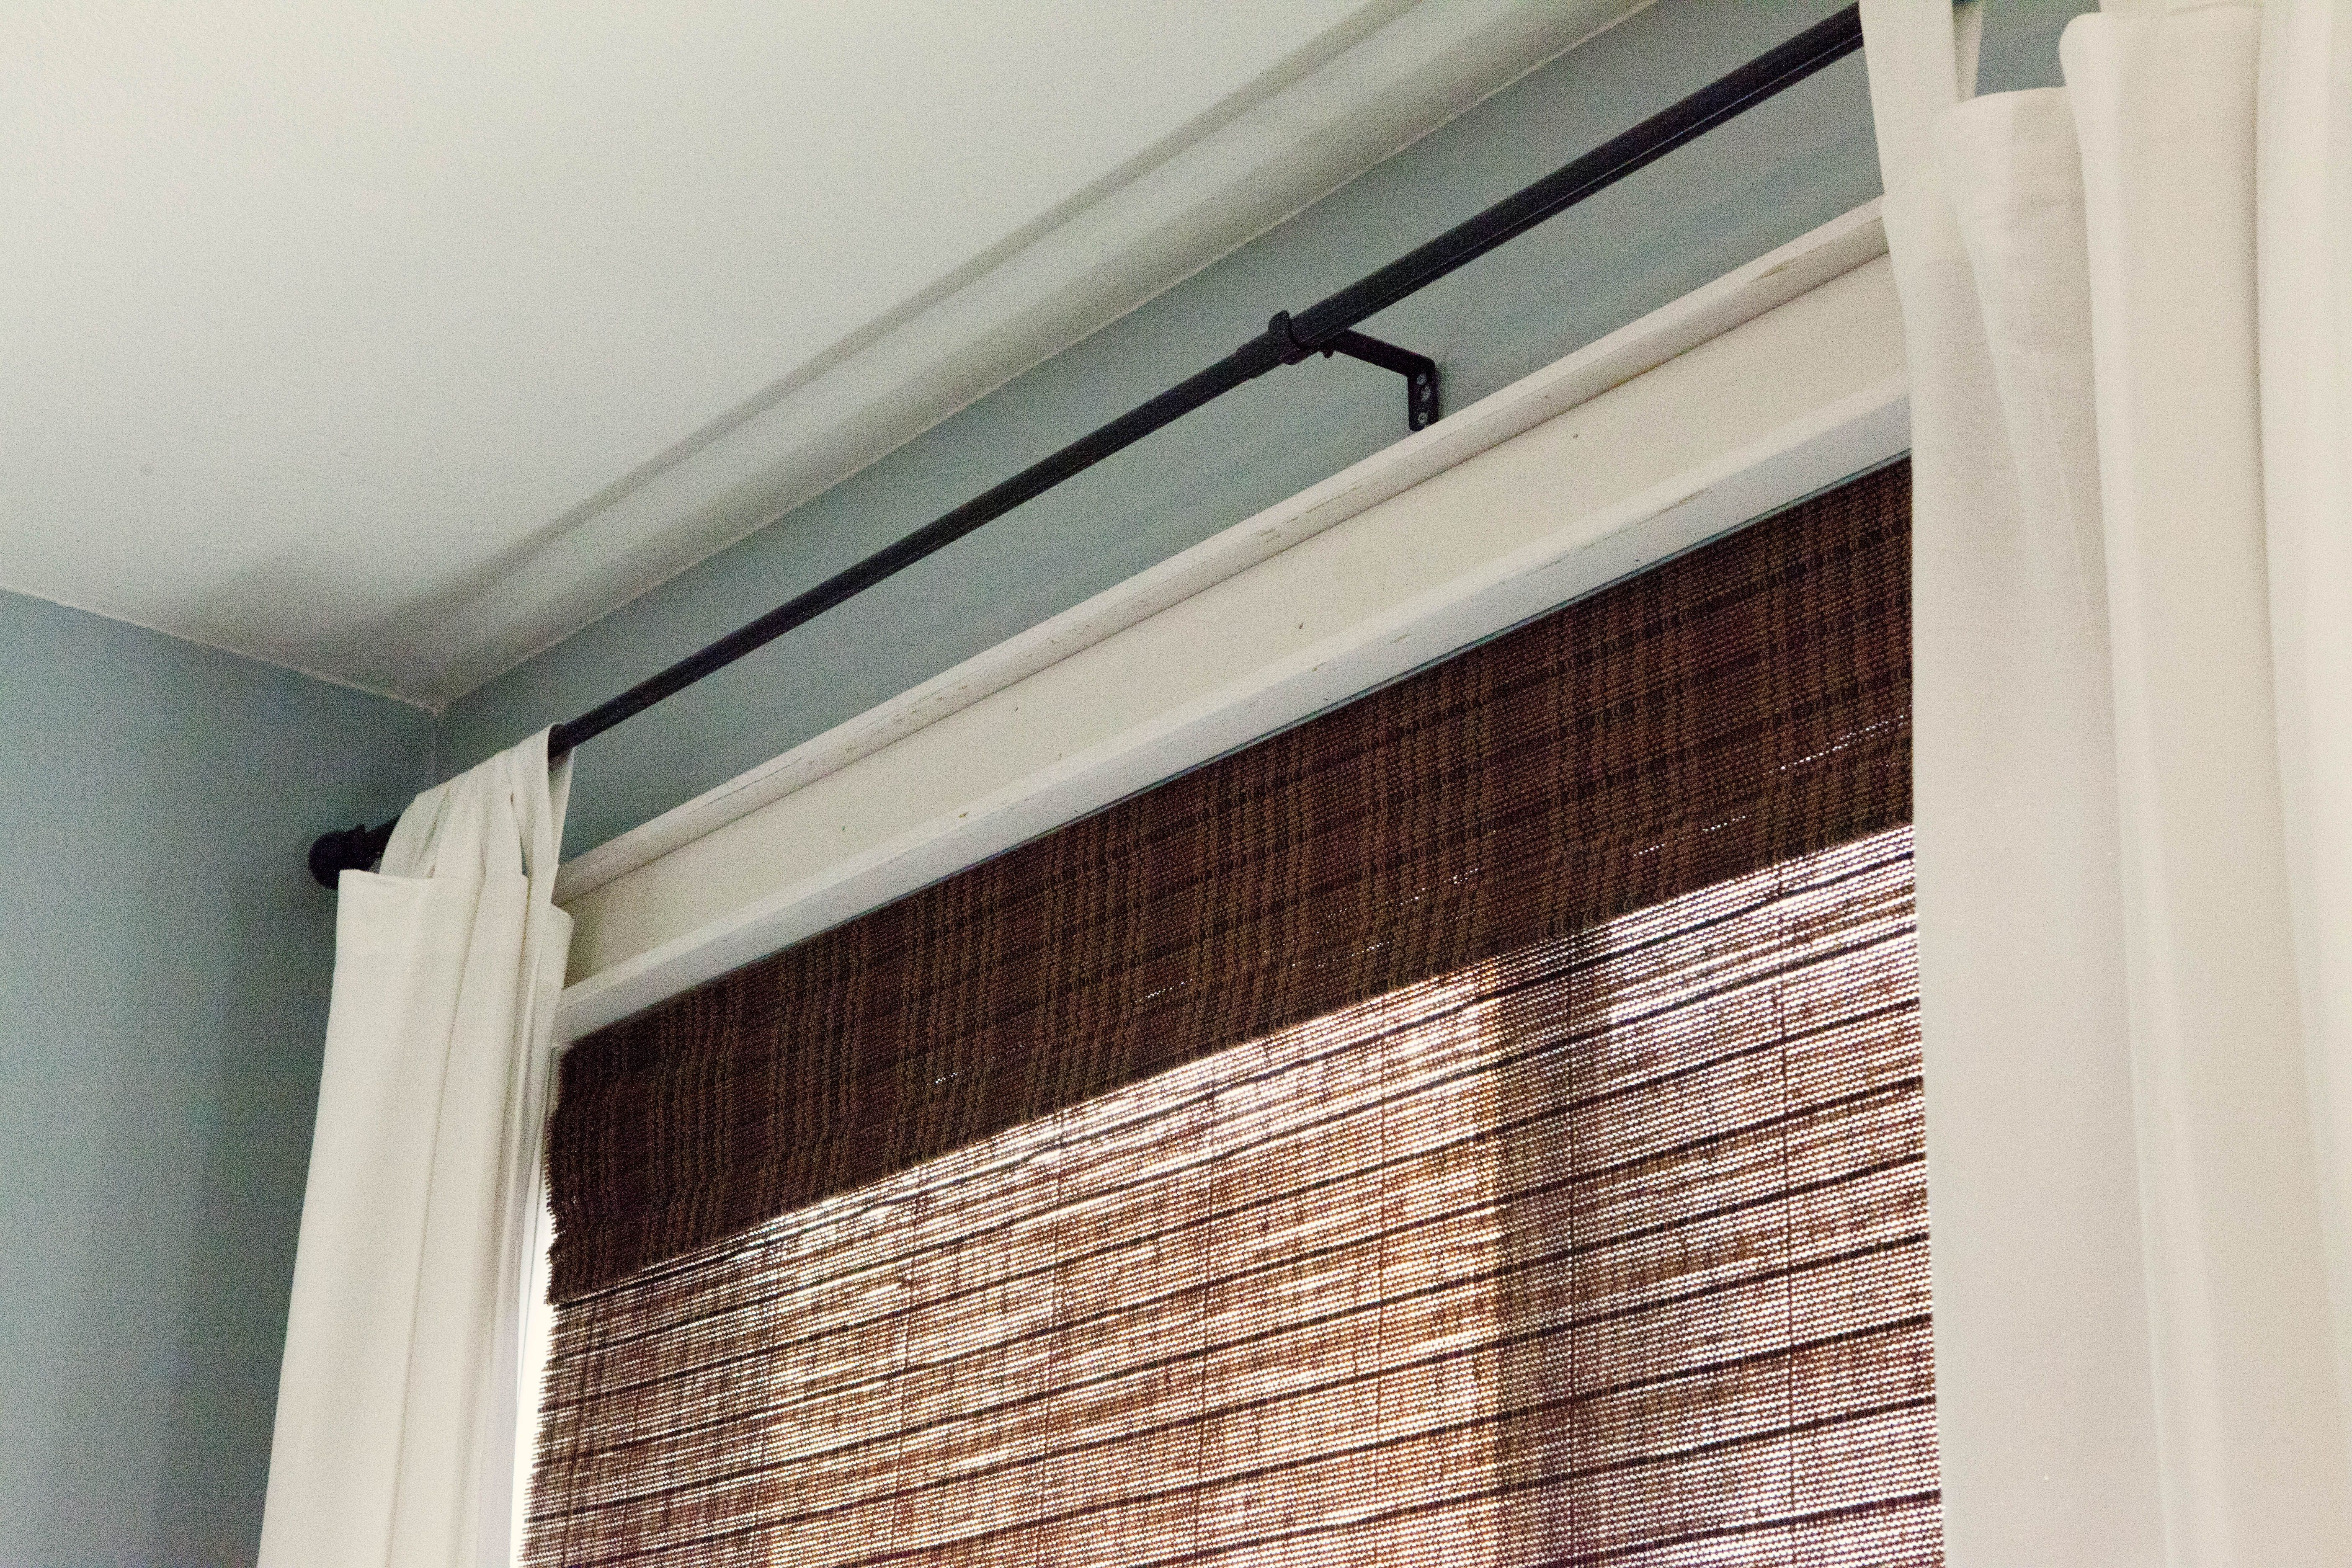 craftsman style window trim I have this trim in most of my